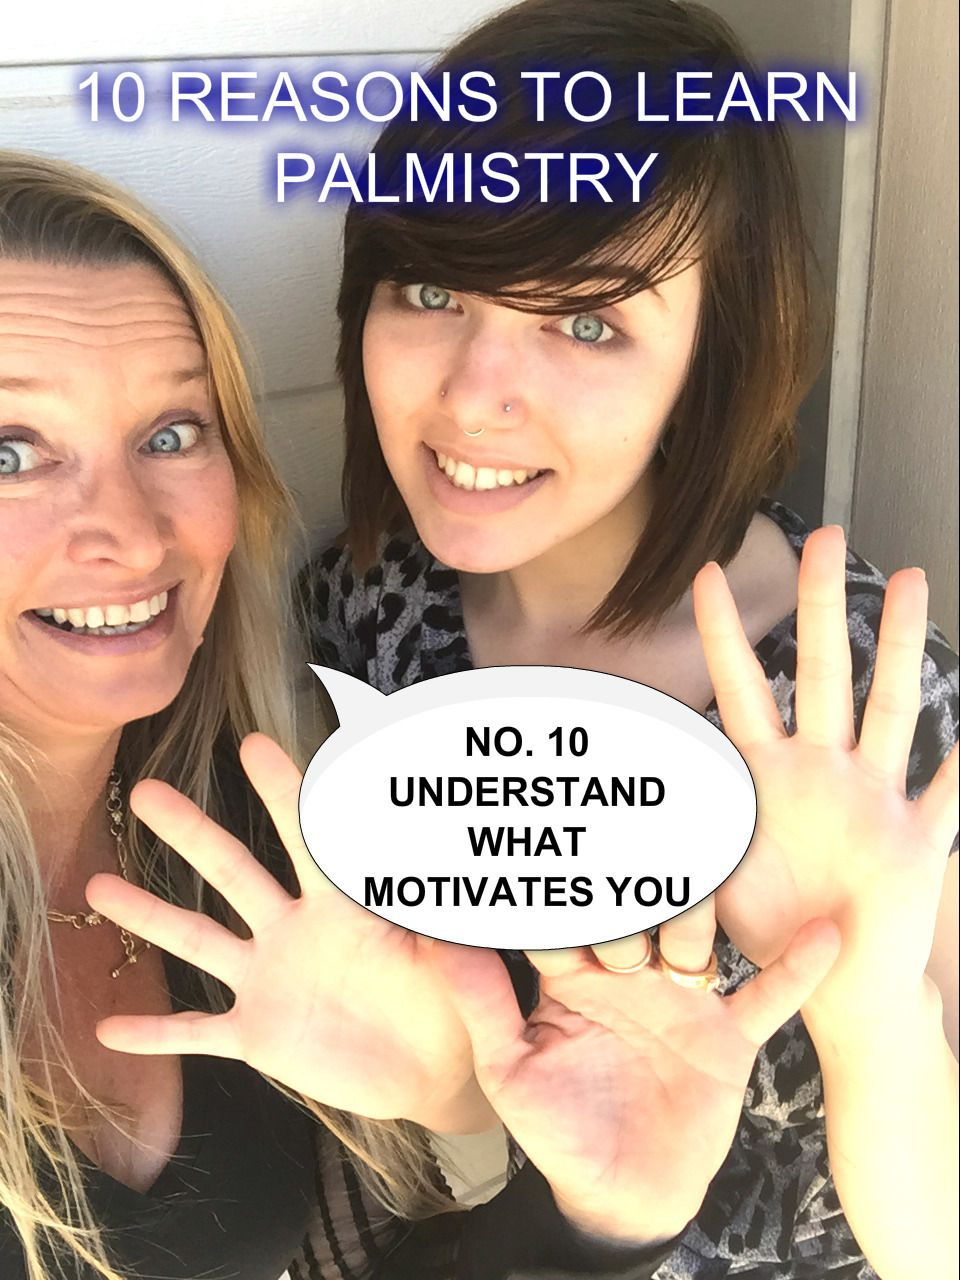 10 reasons to learn palmistry #handanalysis #palmistry